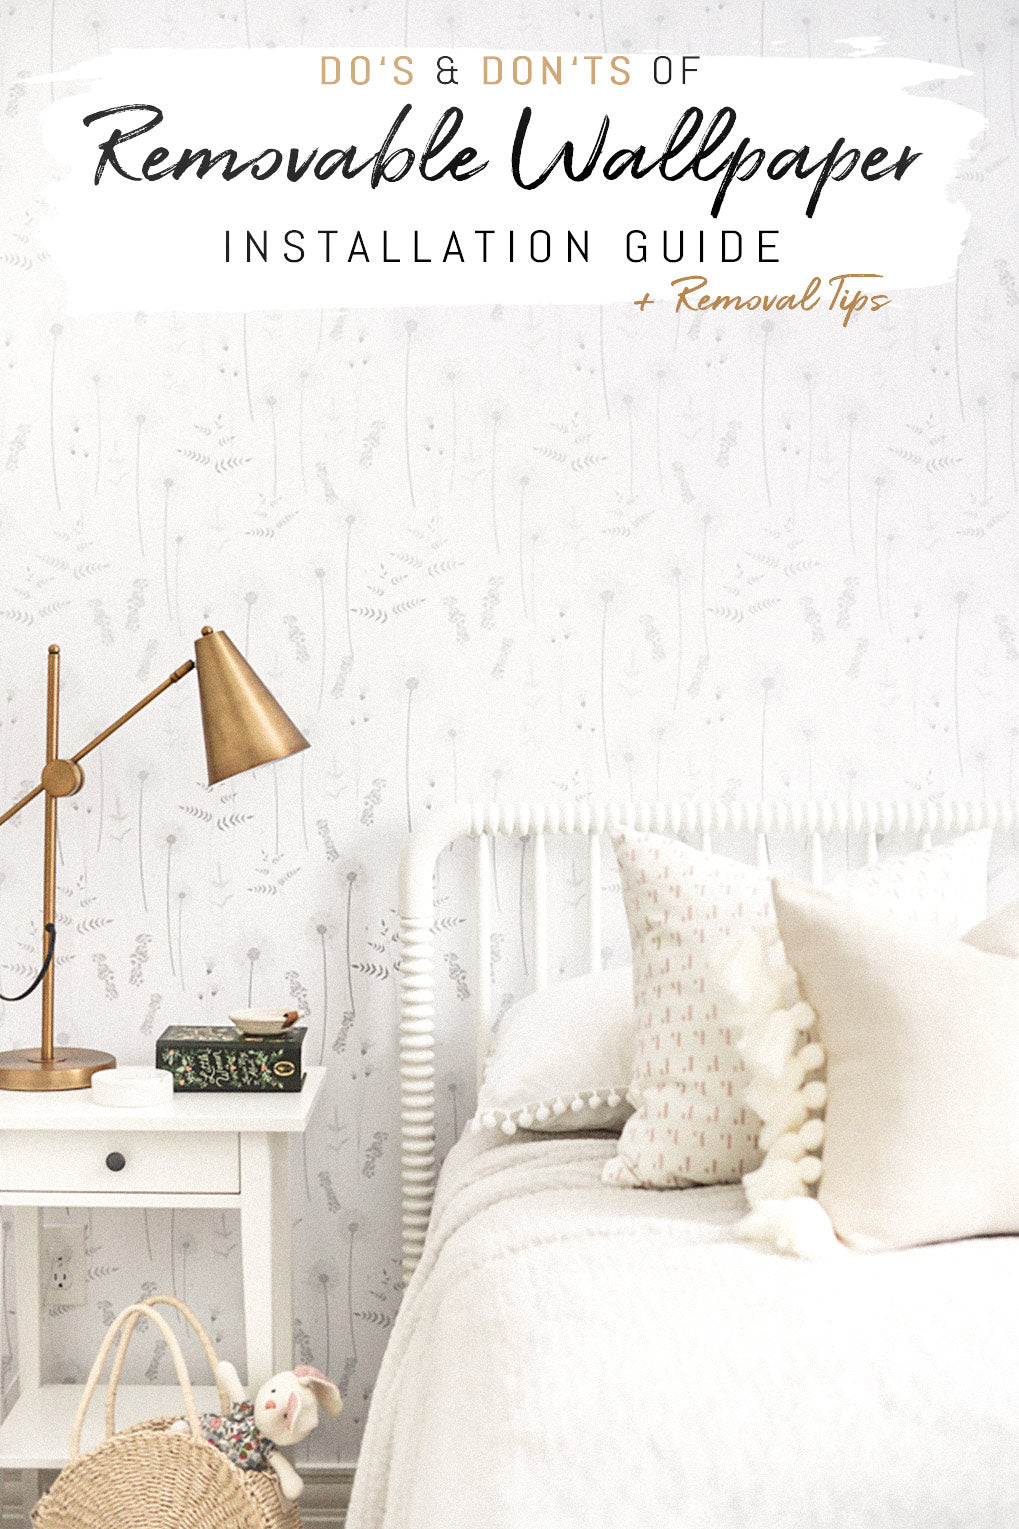 Removable Wallpaper Do S And Don Ts Livette S Wallpaper Livettes